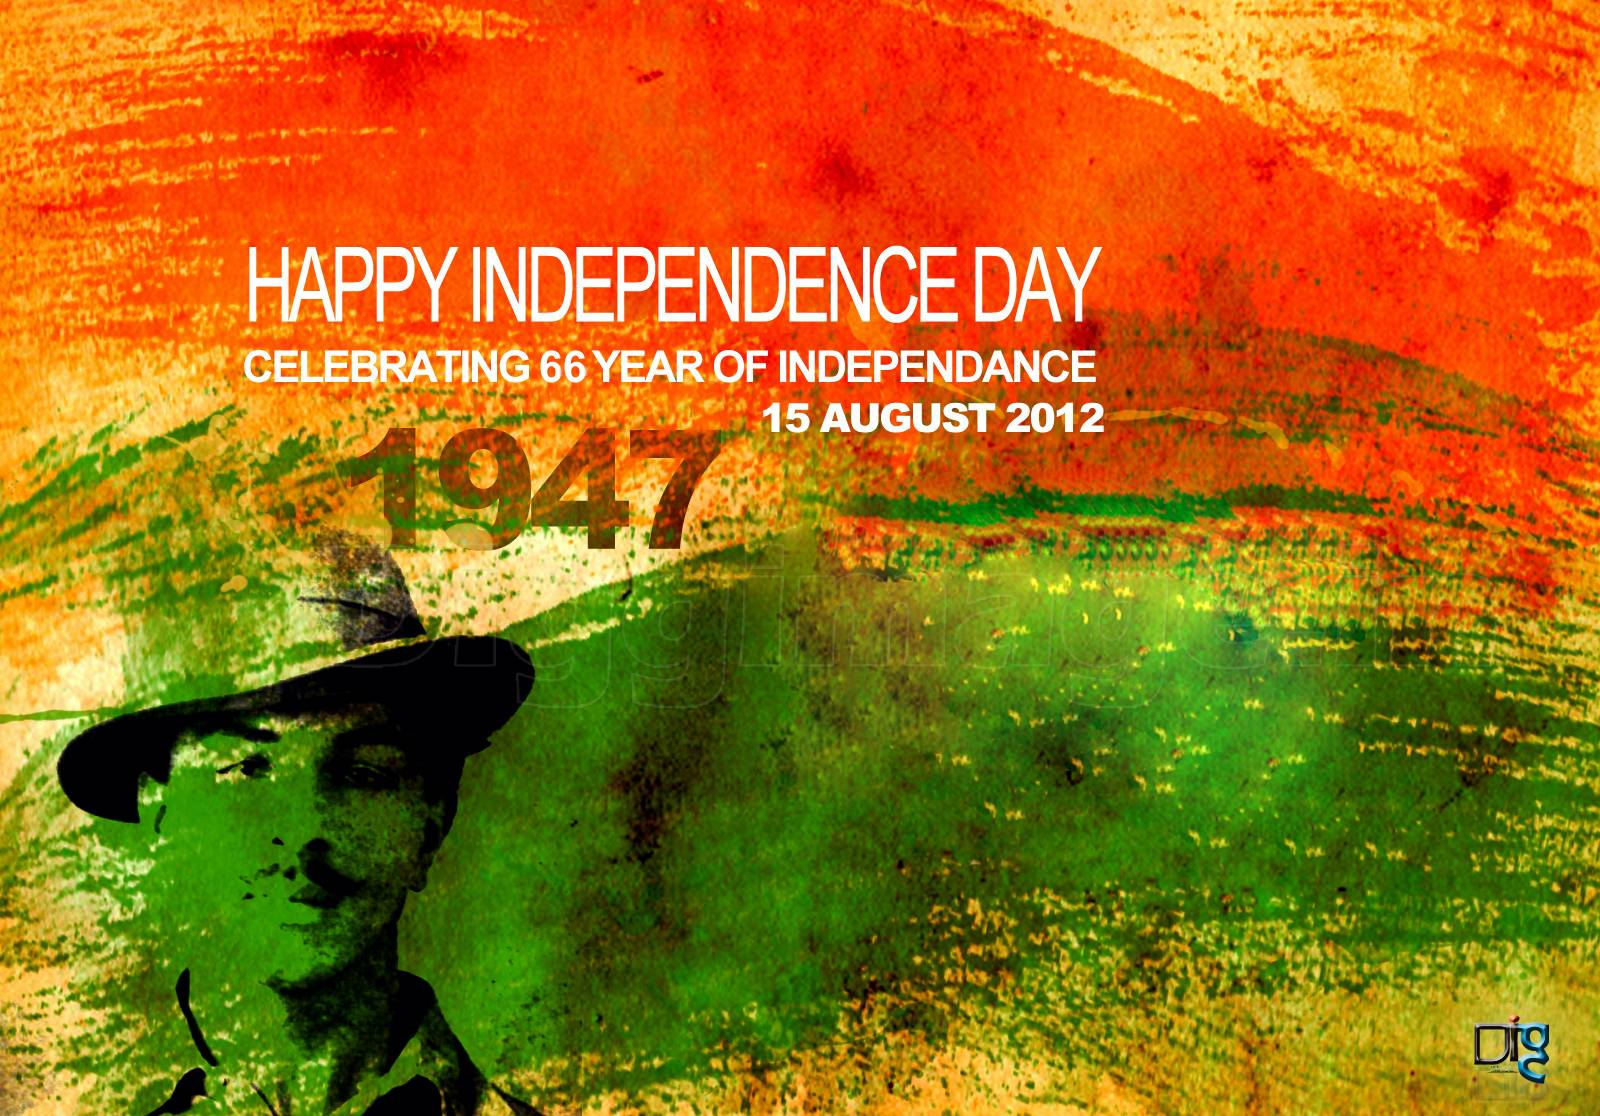 independence day india 2015 wallpapers - wallpaper cave